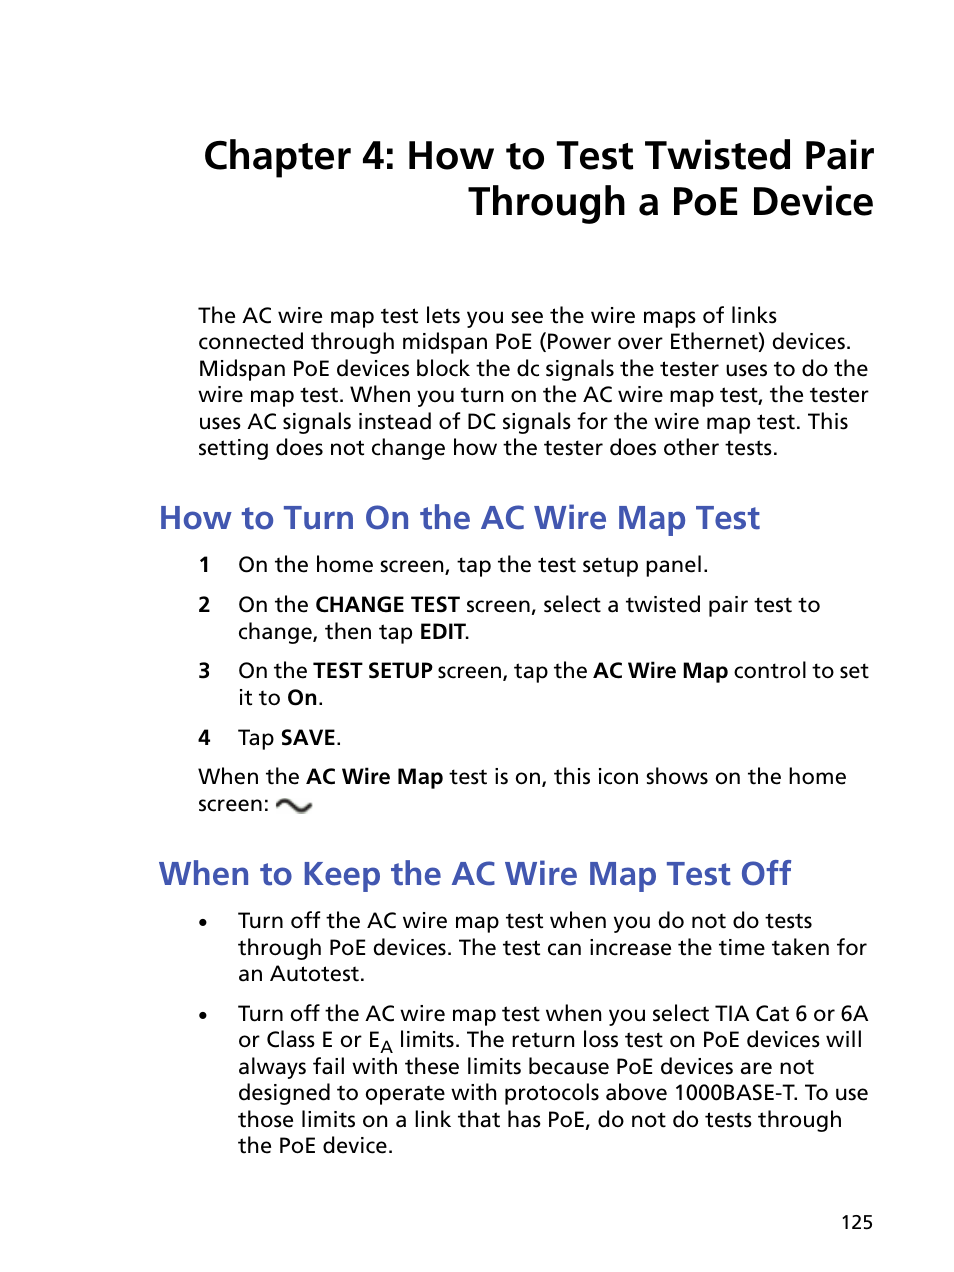 How to turn on the ac wire map test, When to keep the ac wire map ...